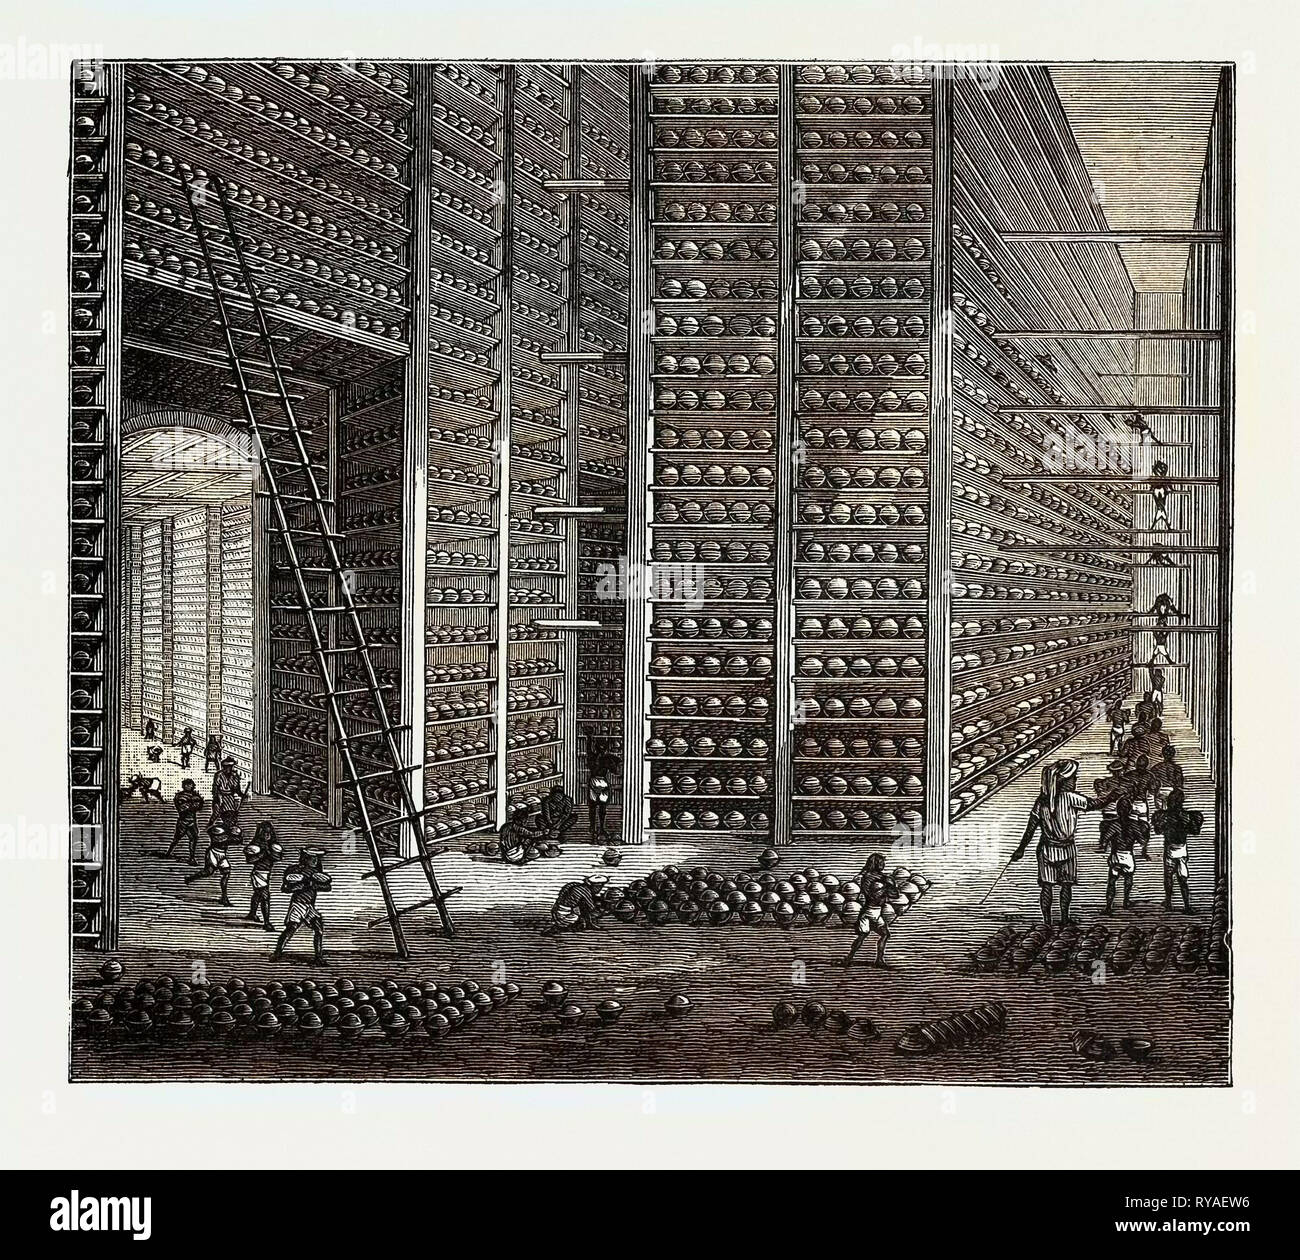 The Indo-Chinese Opium Trade, at an Opium Factory at Patna: The Stacking Room Stock Photo